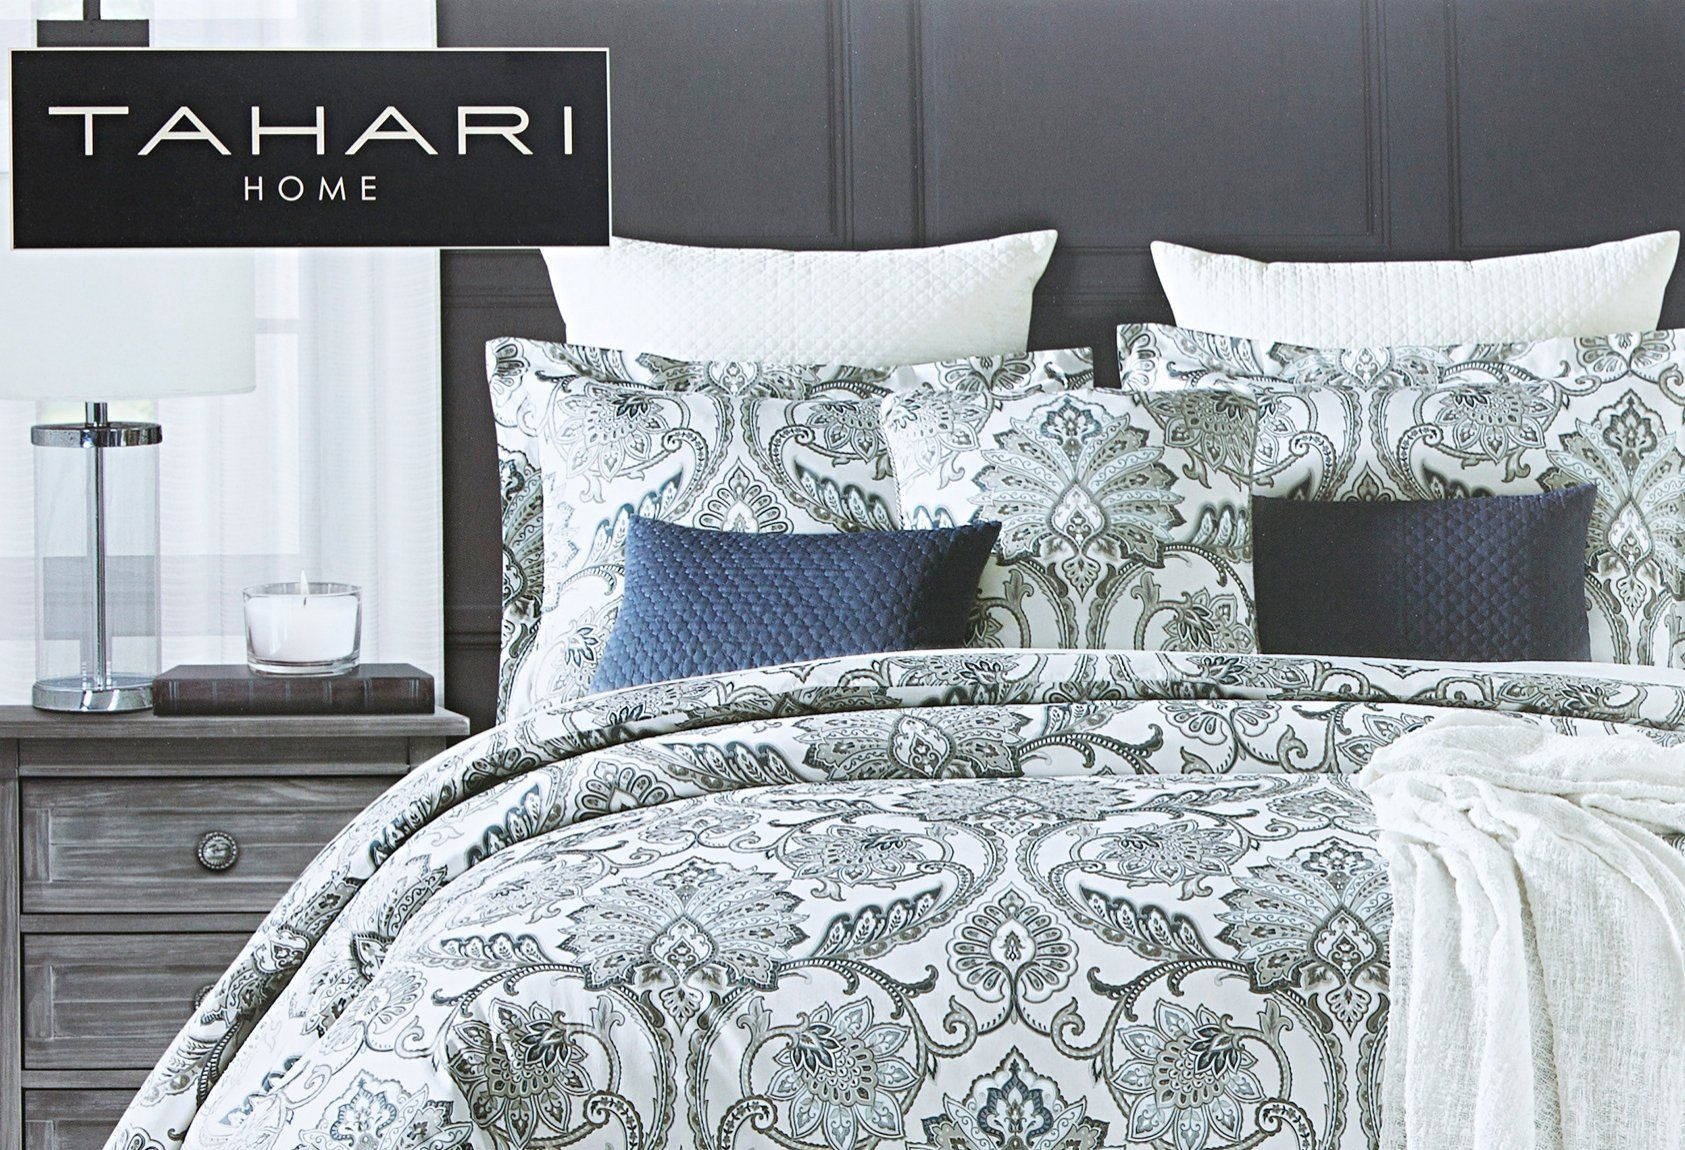 Tahari Home 3pc King Or Queen Duvet Cover Set Large Medallion Grey